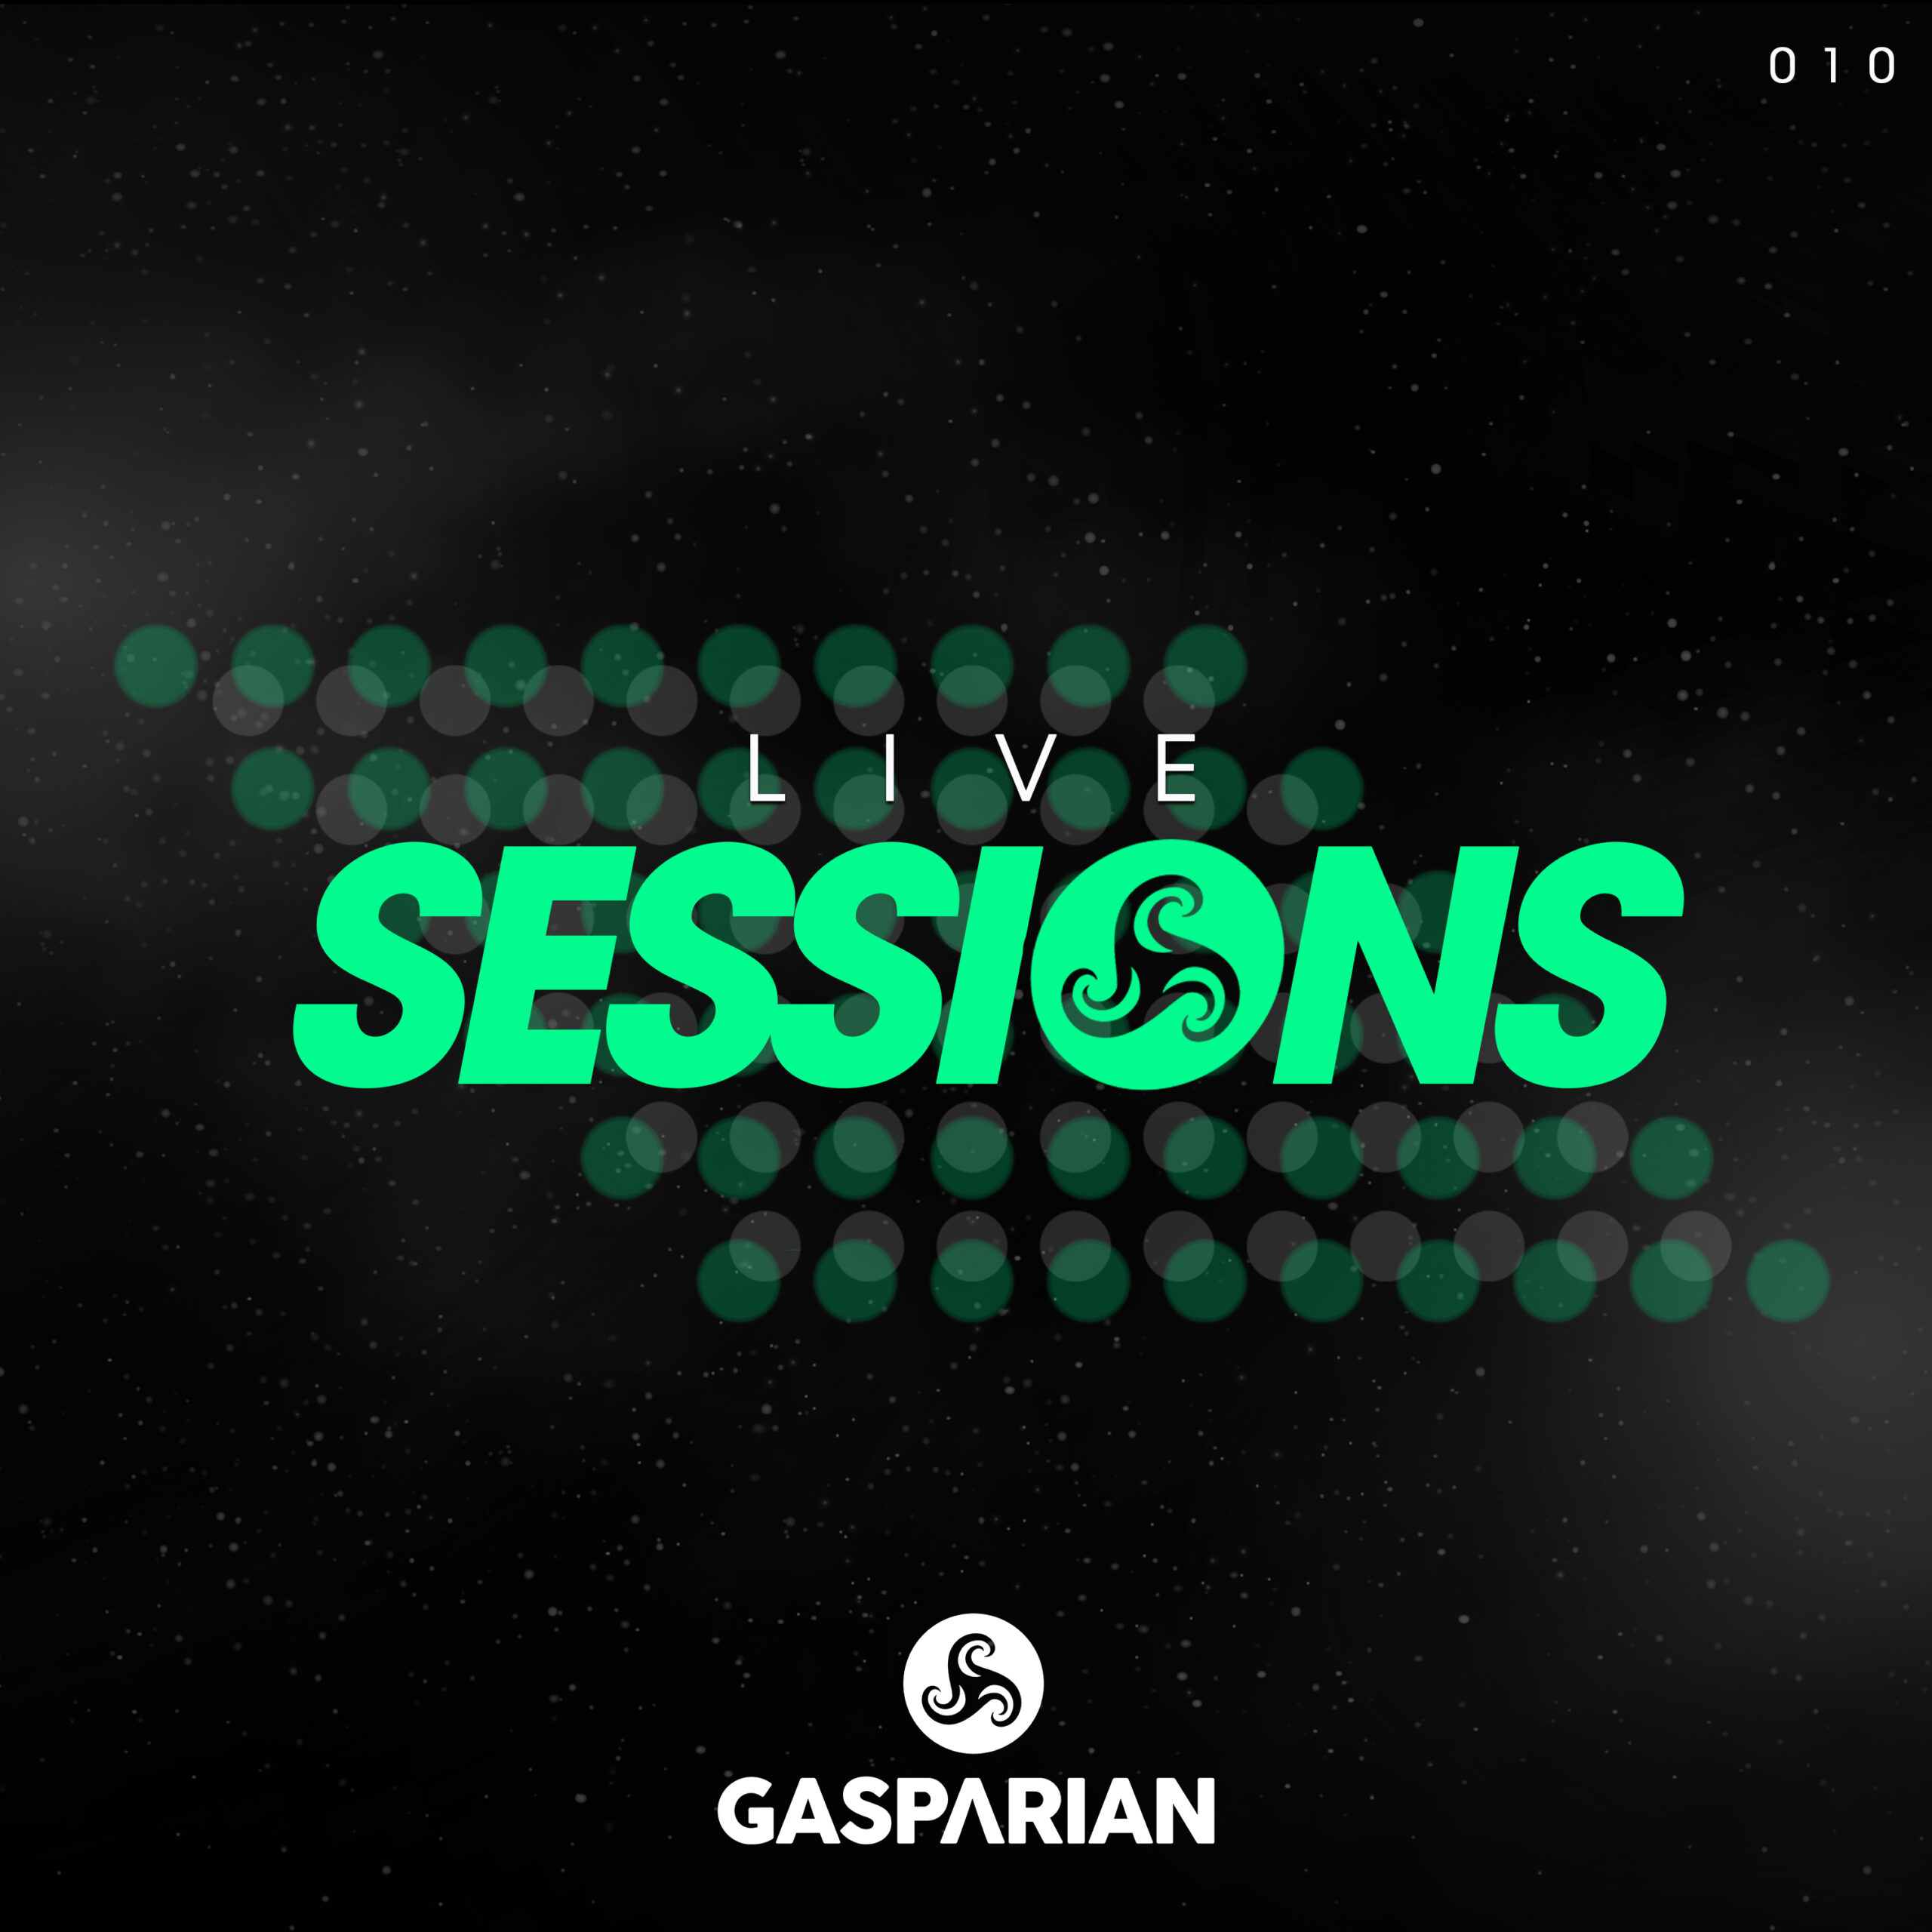 @Gasparian Live Sessions 010